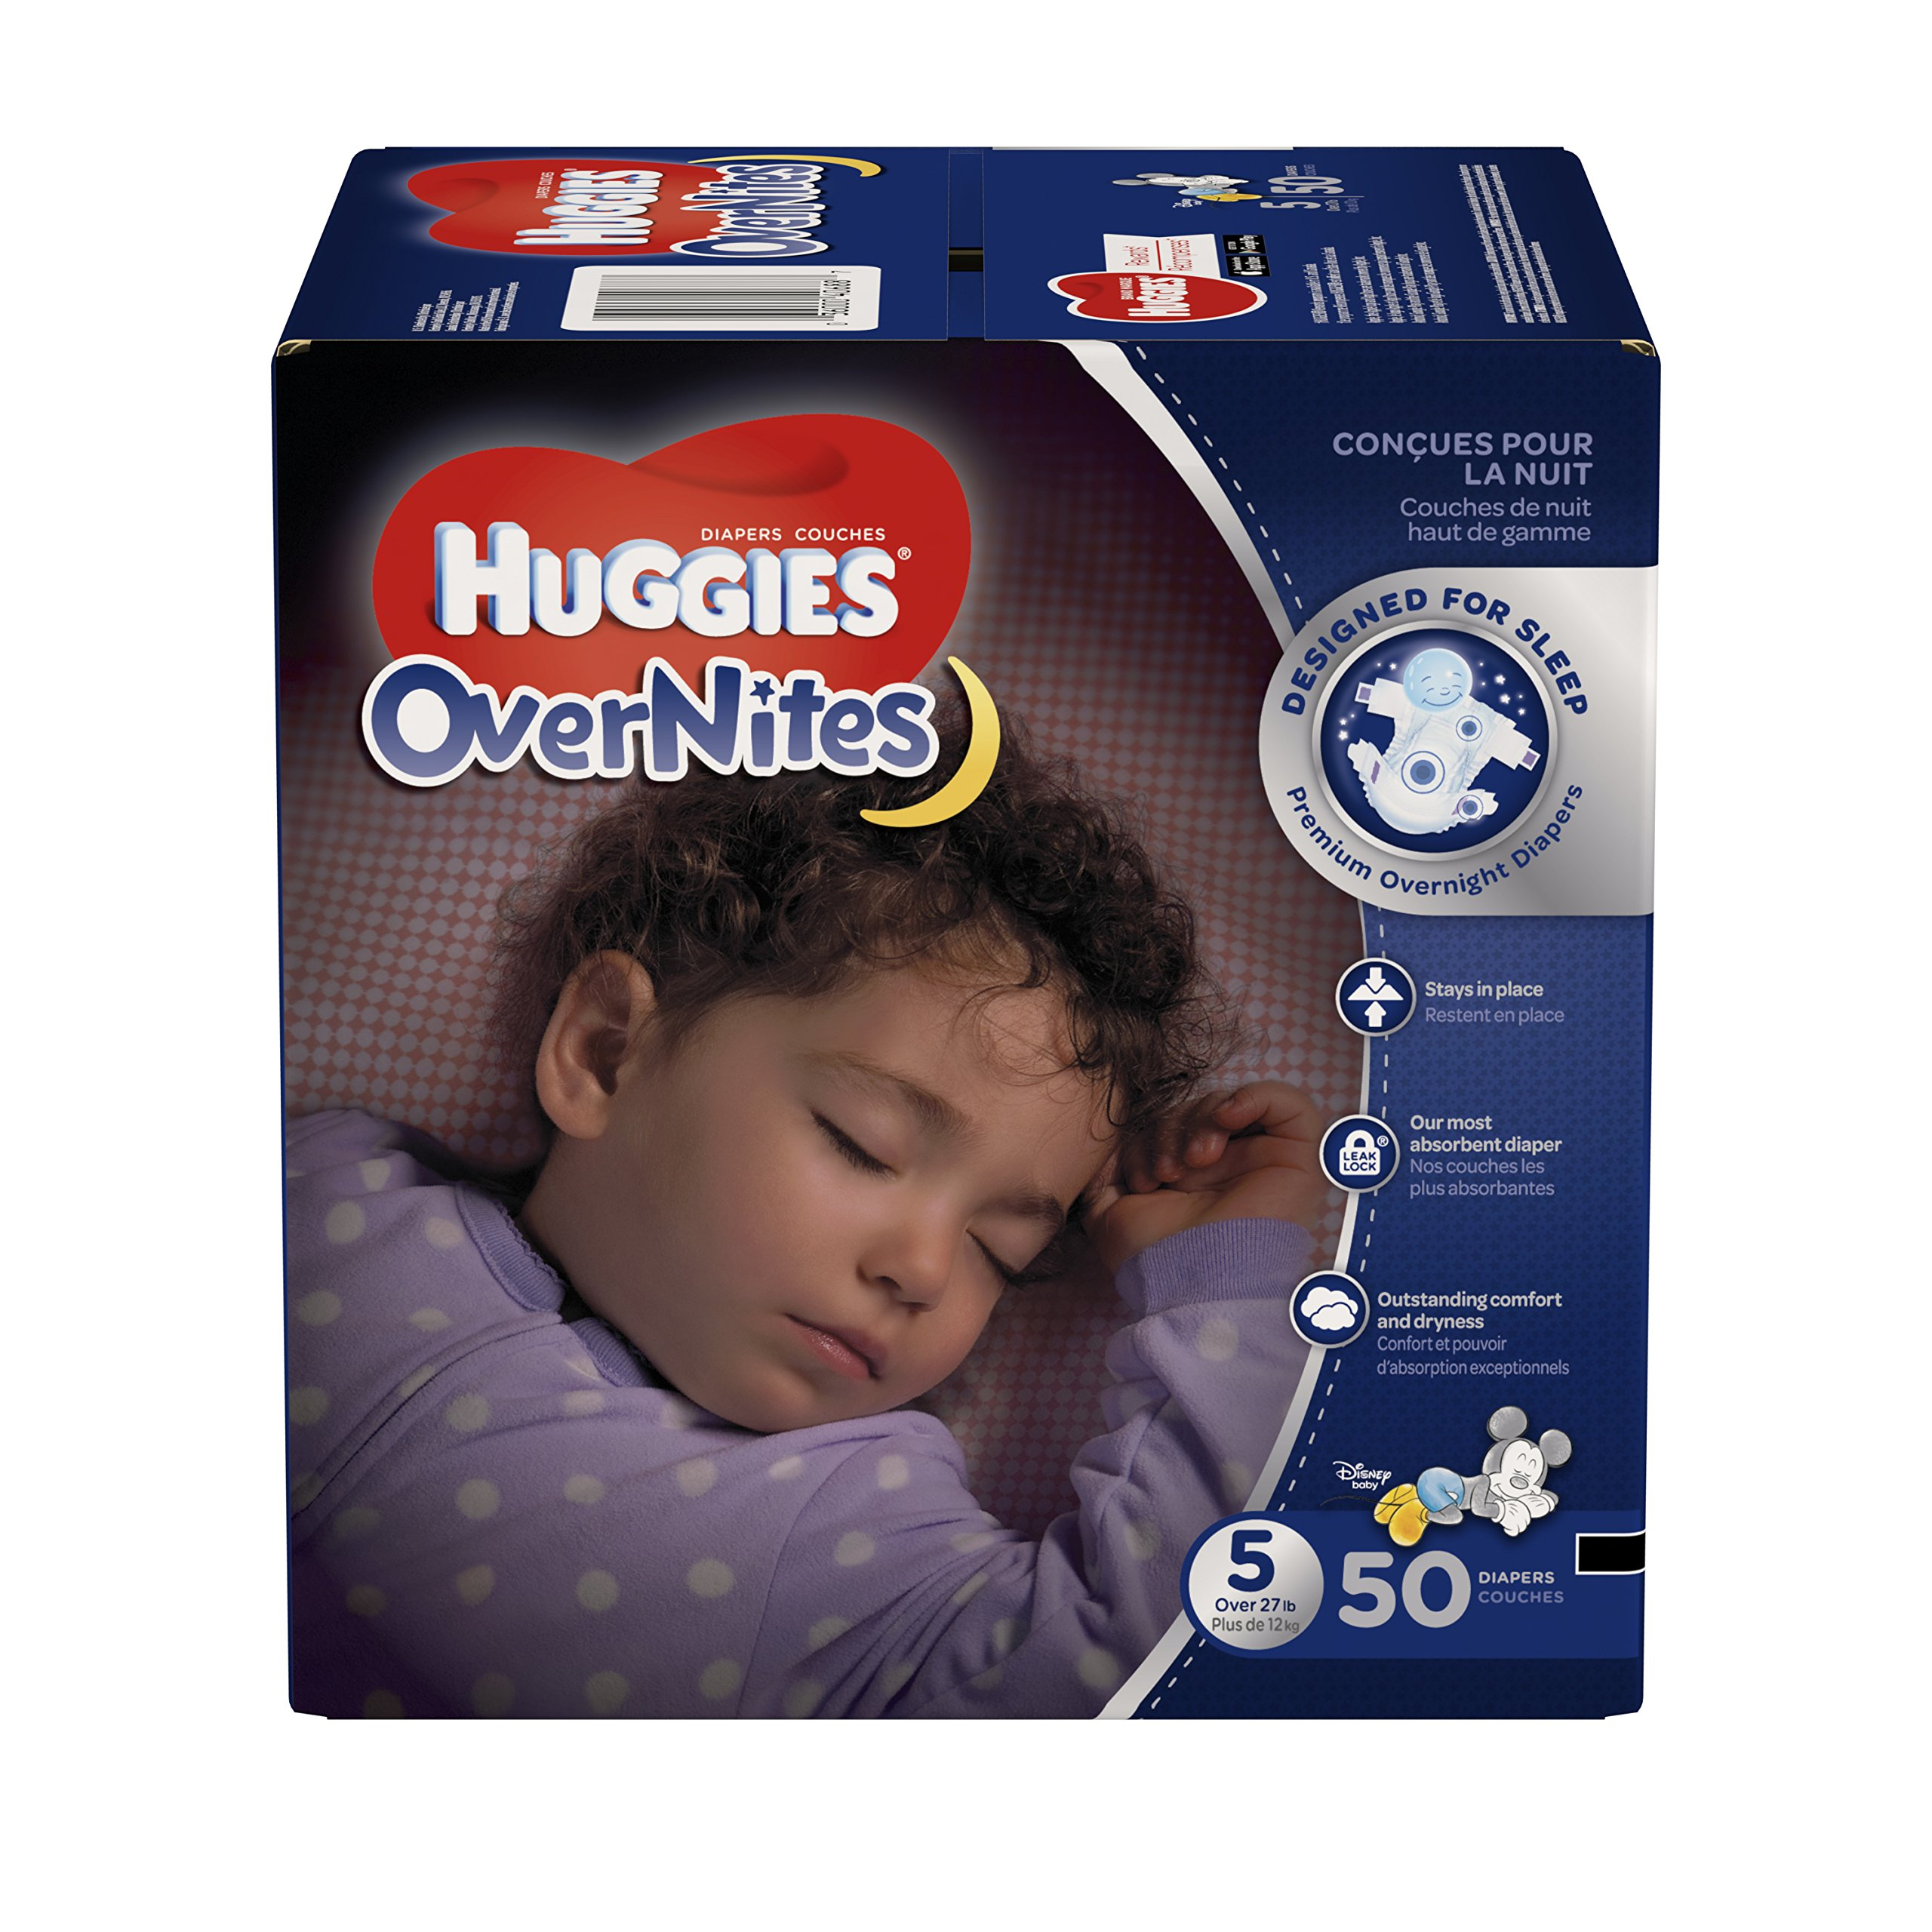 HUGGIES OverNites Diapers, Size 5, 50 ct, BIG PACK Overnight Diapers (Packaging May Vary)